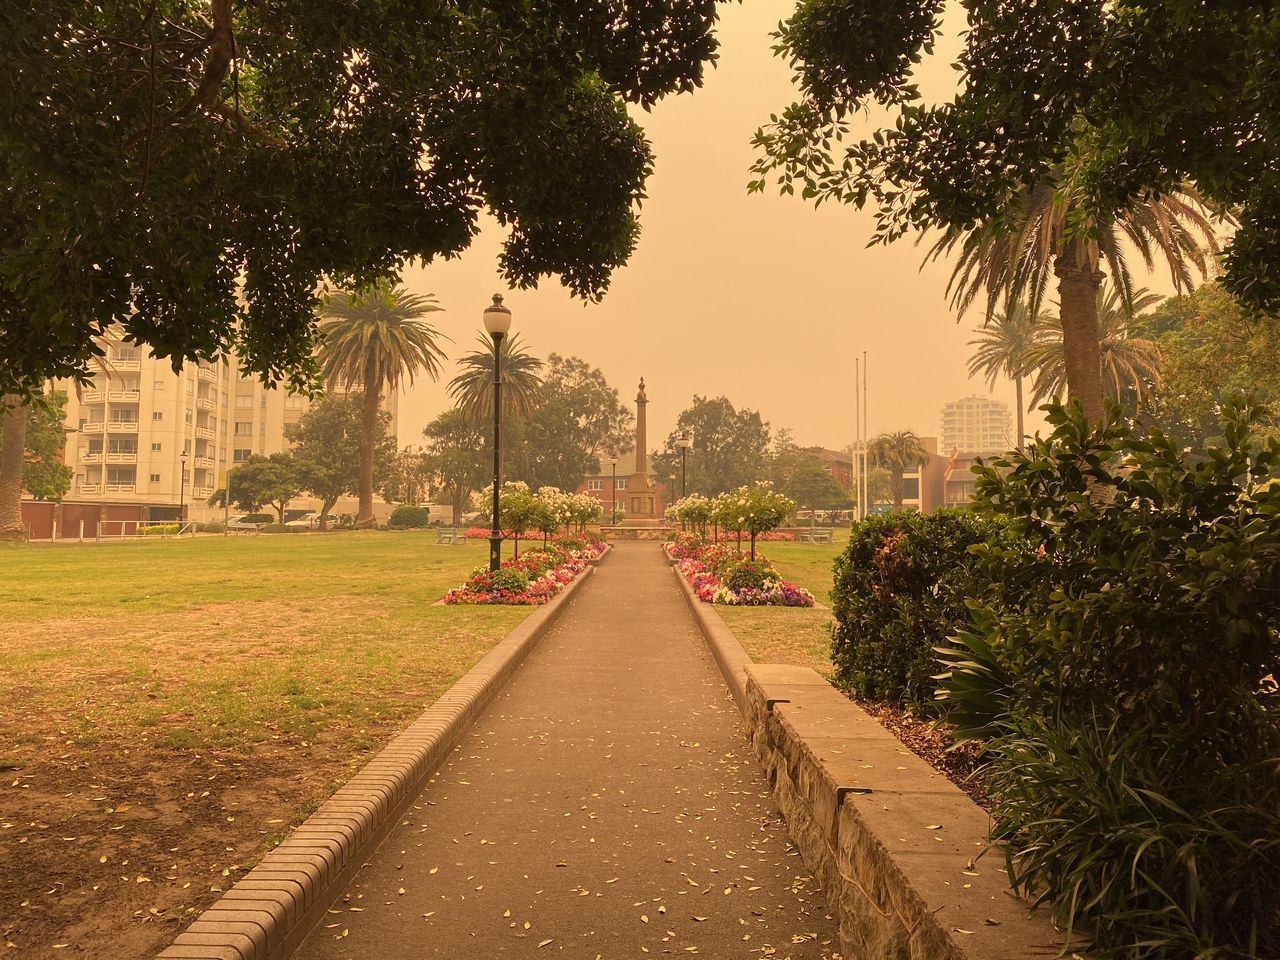 Footpath amidst trees in city against sky